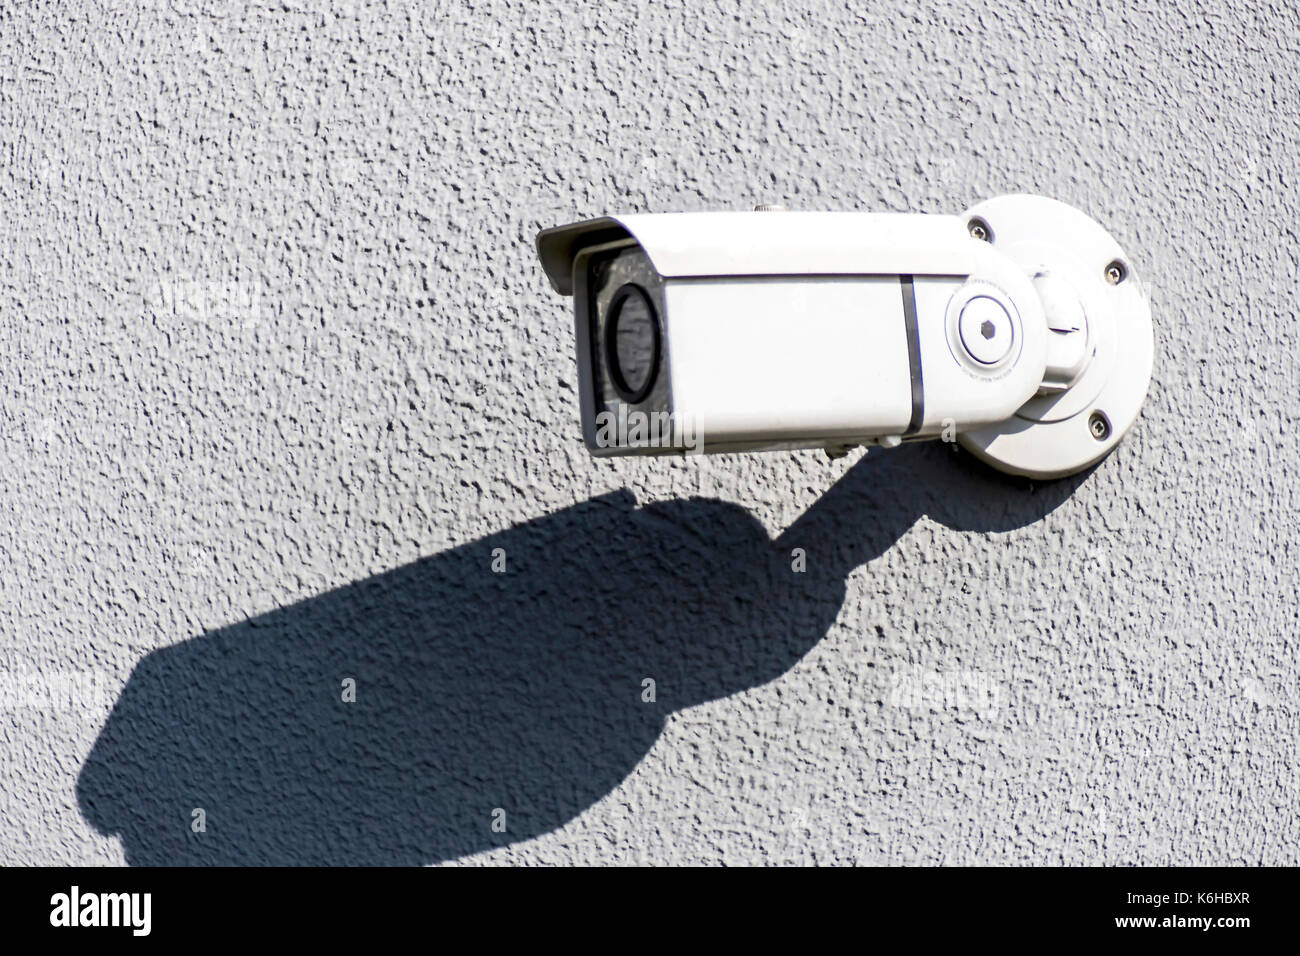 Security Camera - Stock Image